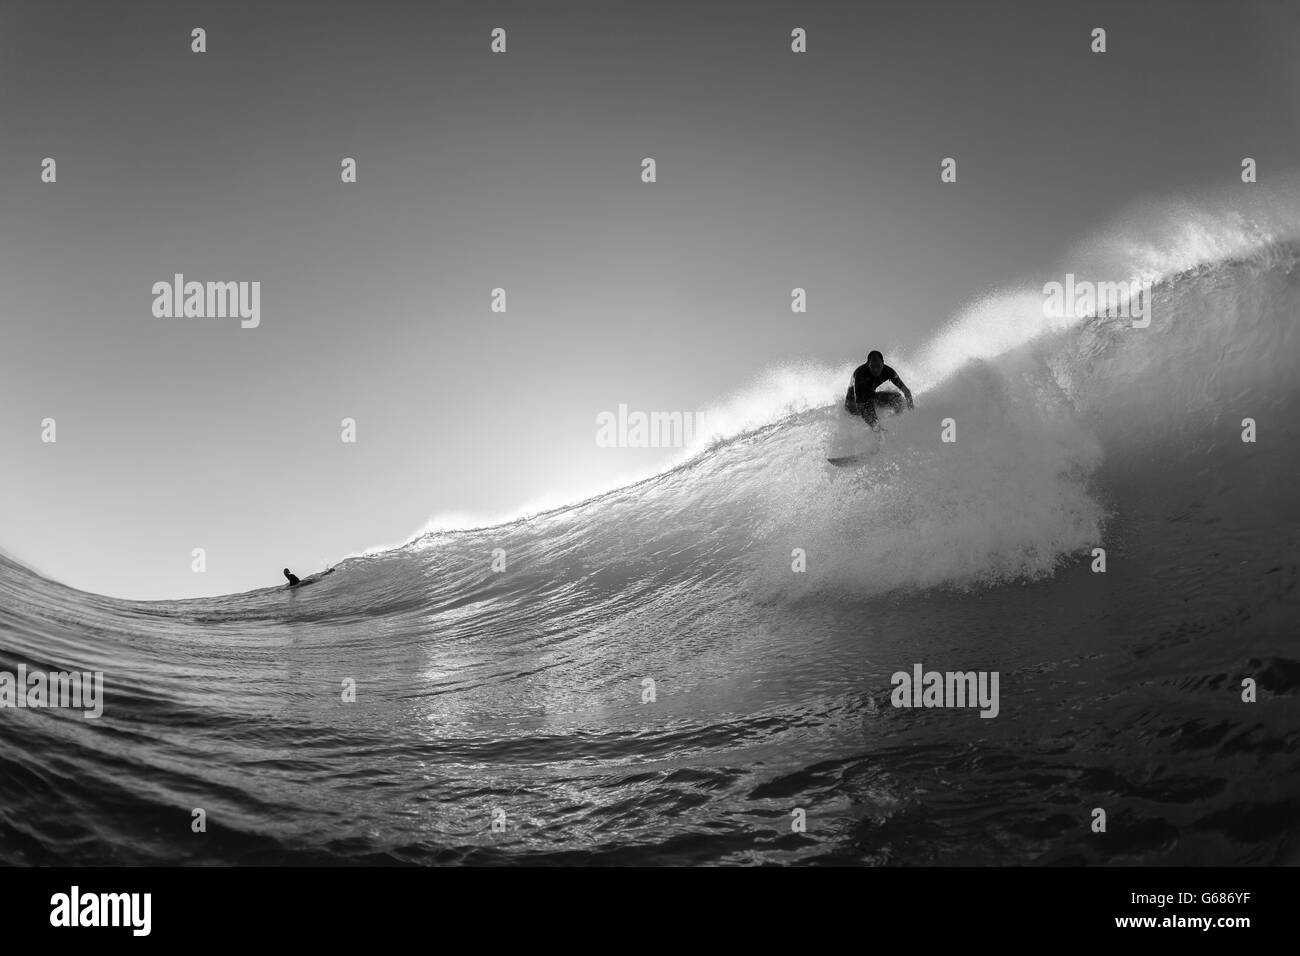 La silhouette du surfeur surf non identifiés l'action de l'eau libre natation photo. Photo Stock